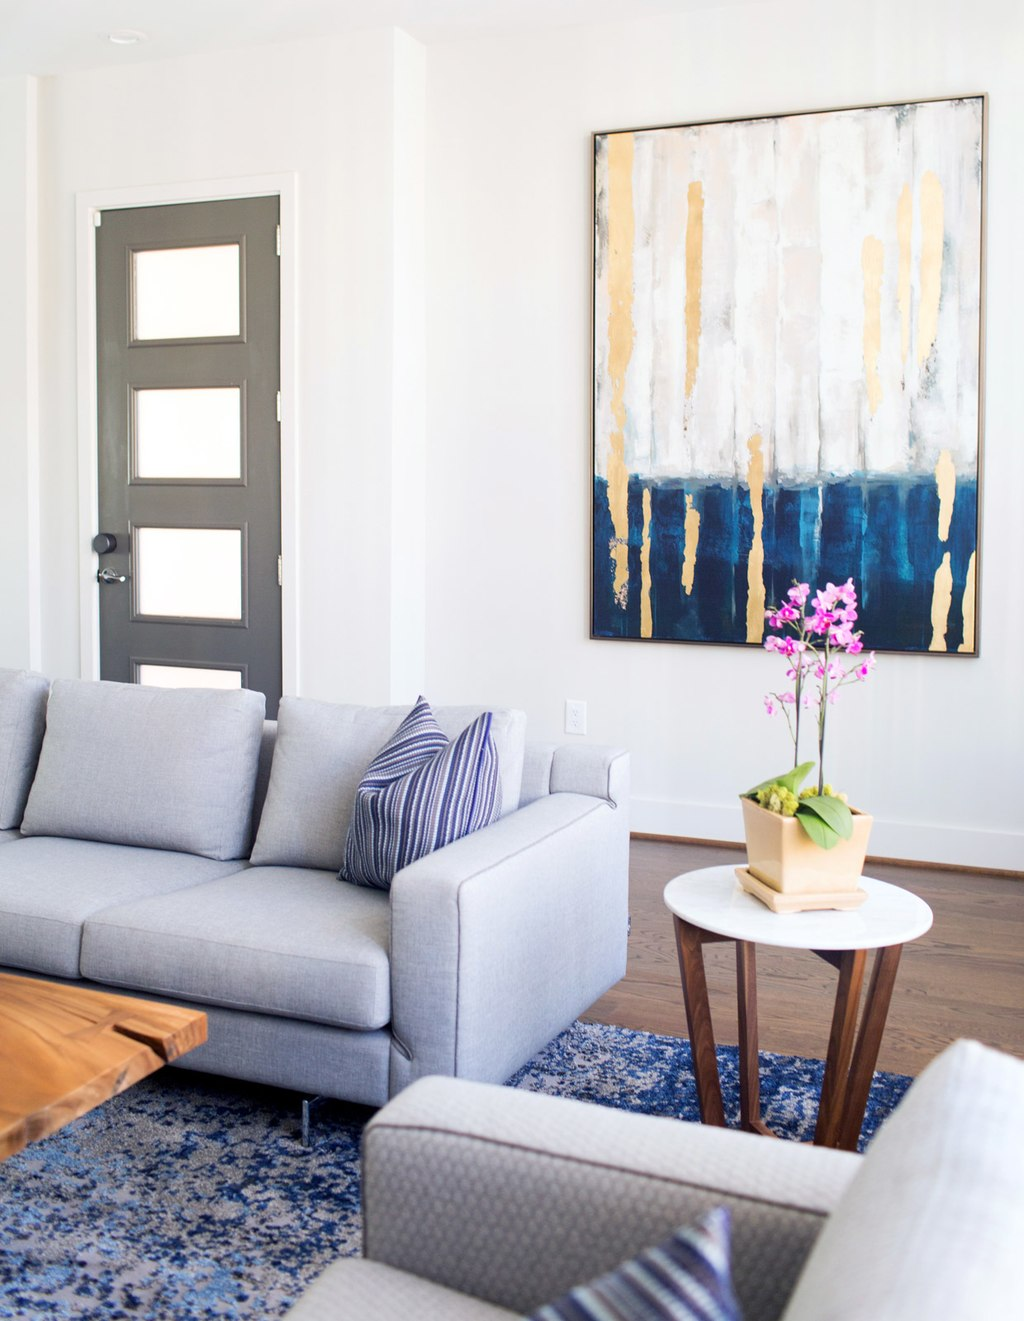 architecturally inclined townhome cantoni lennox mosaic accent table kohls enter designer kohl sudnikovich stranger working with blank palette found his inspiration blue toned